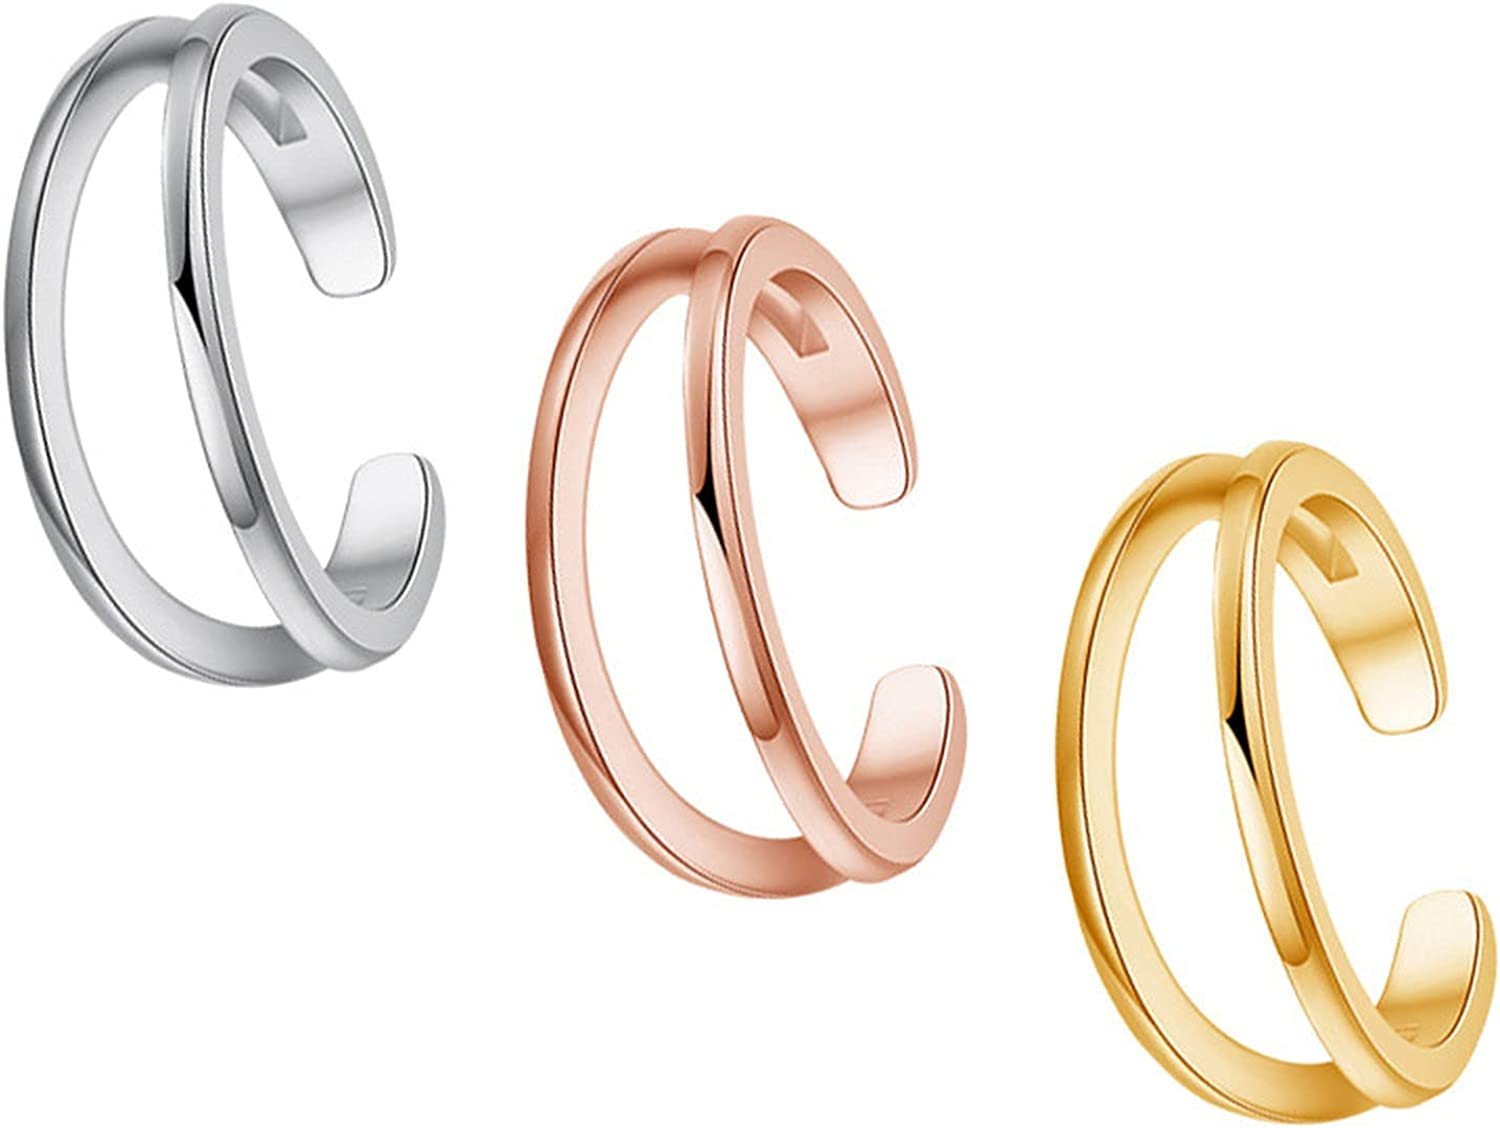 3PCS Copper Adjustable Toe Rings for Women Girls Summer Beach Hypoallergenic Flower Openknuckle rings Band Sandals Foot Jewelry